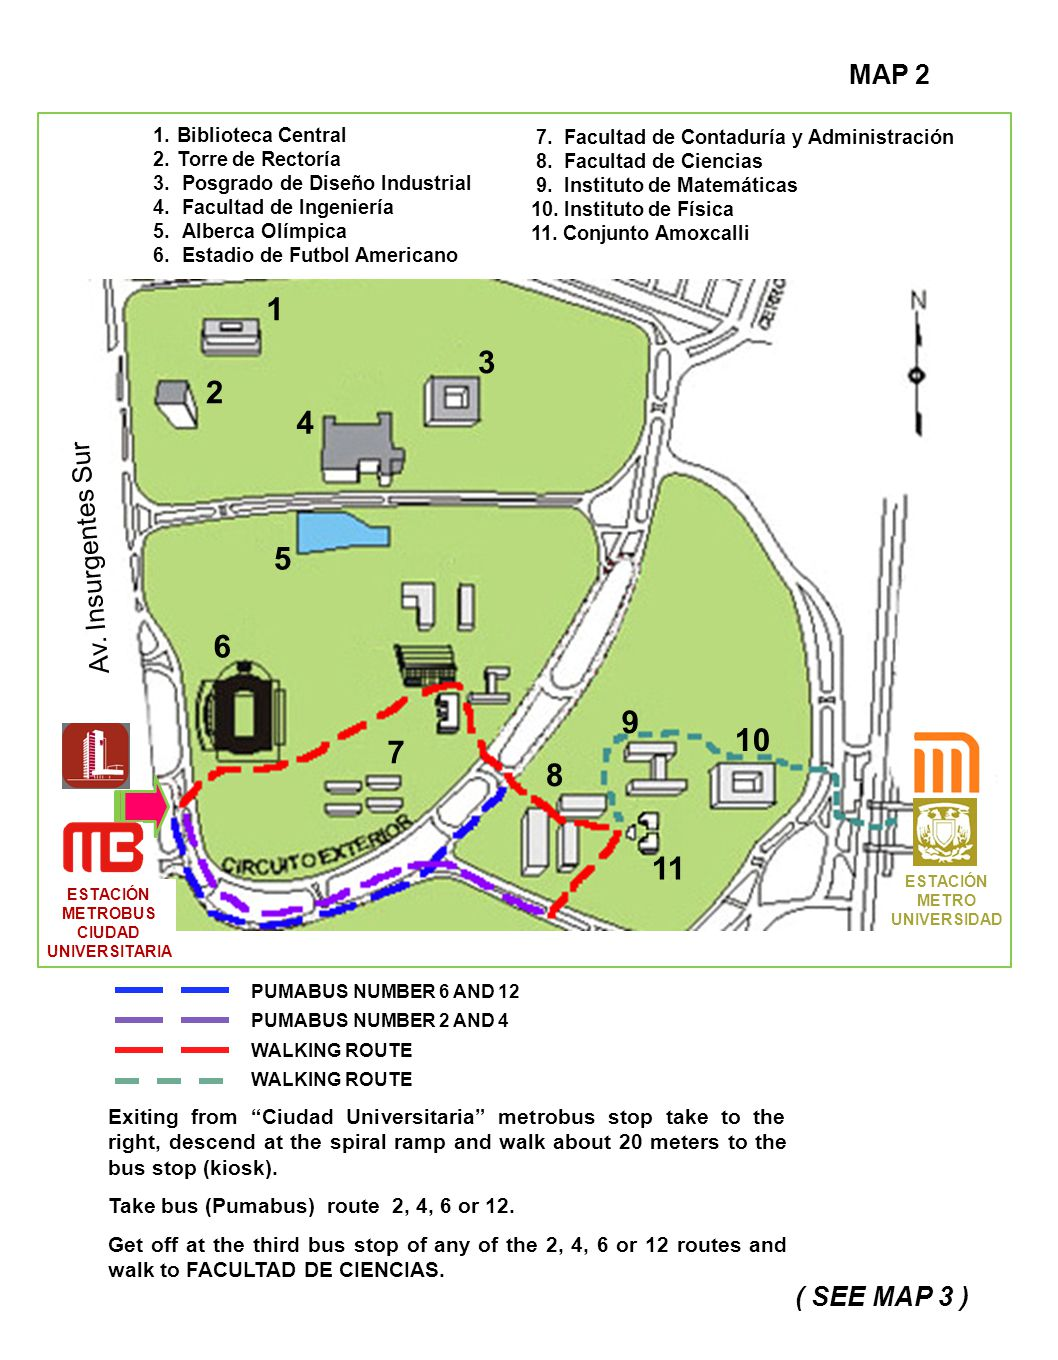 """Exiting from """"Ciudad Universitaria"""" metrobus stop take to the right, descend at the spiral ramp and walk about 20 meters to the bus stop (kiosk). Take"""